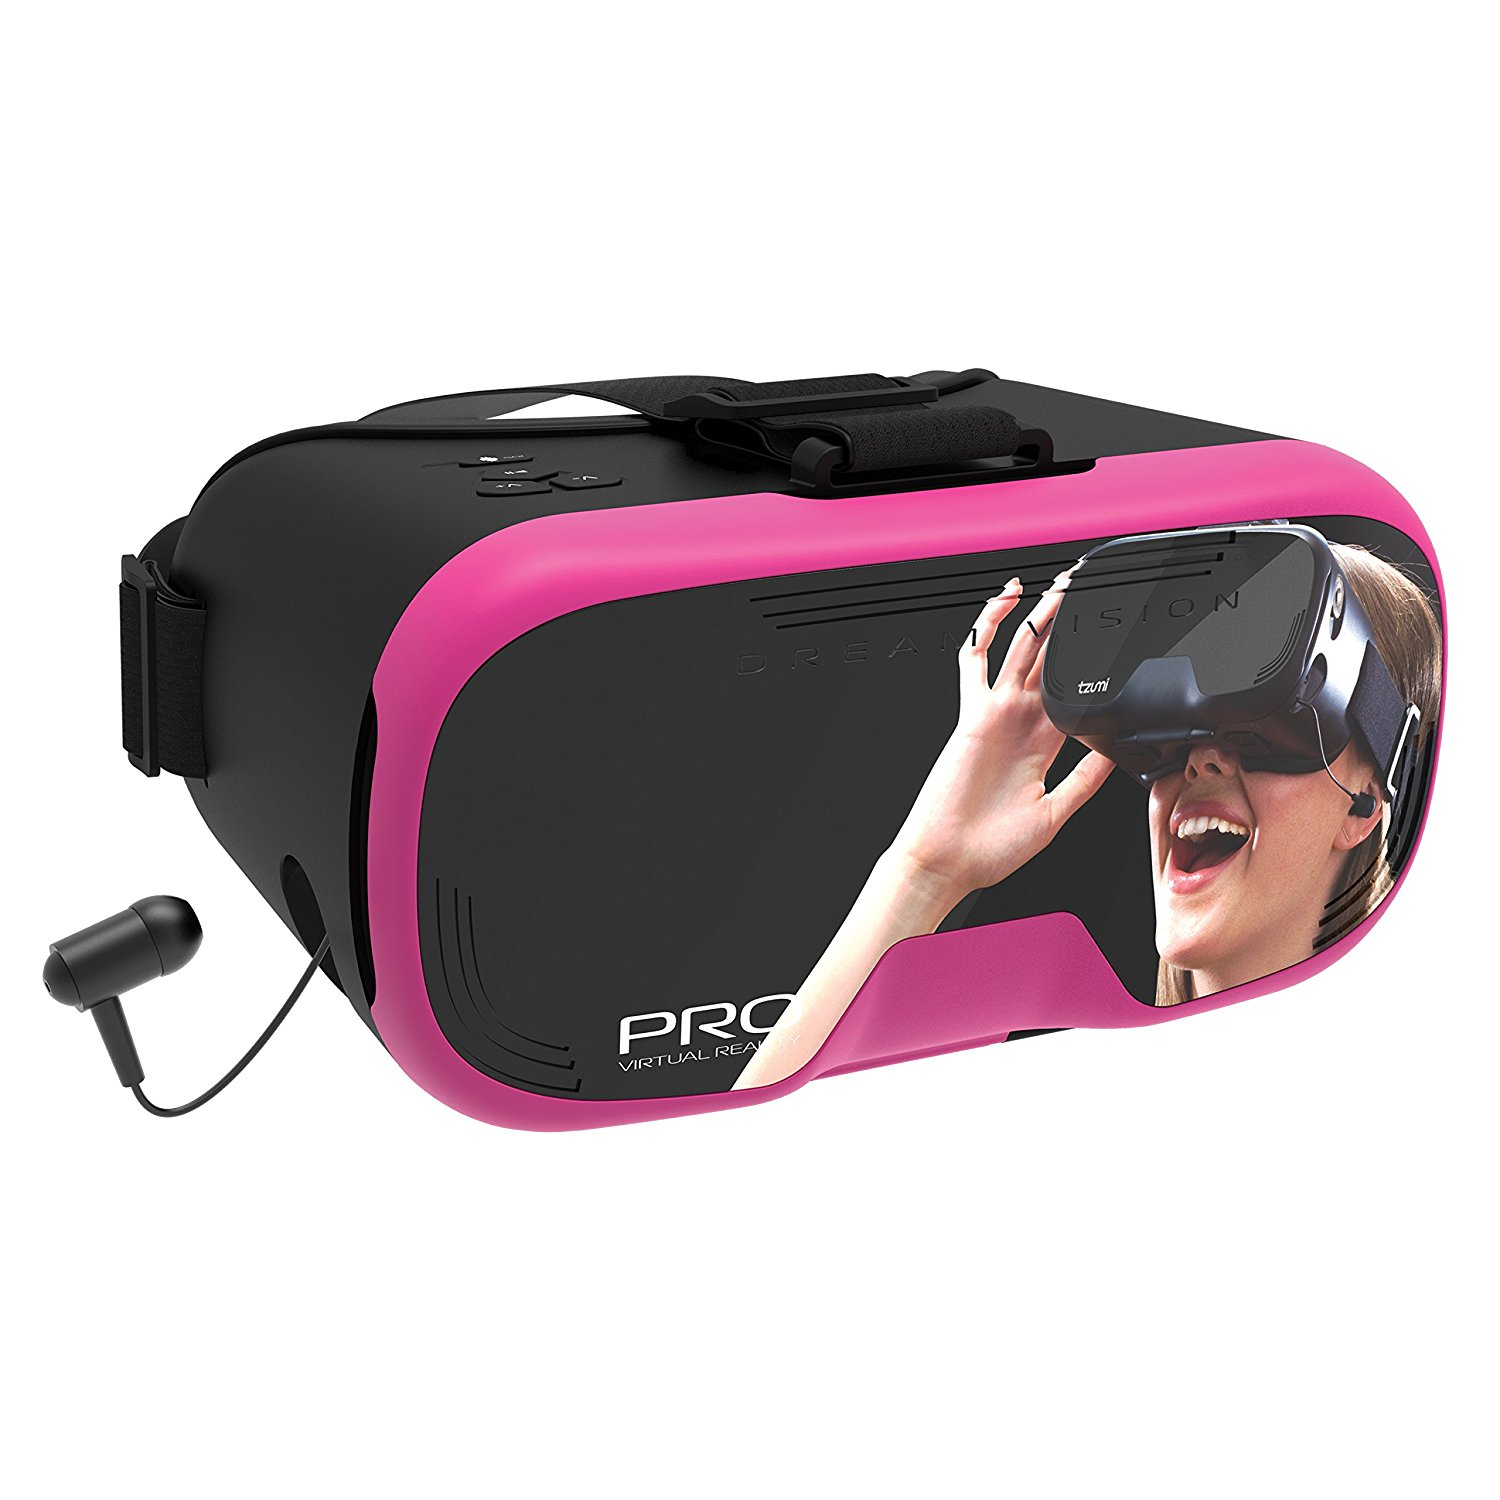 dream vision pro virtual reality smartphone headset instructions